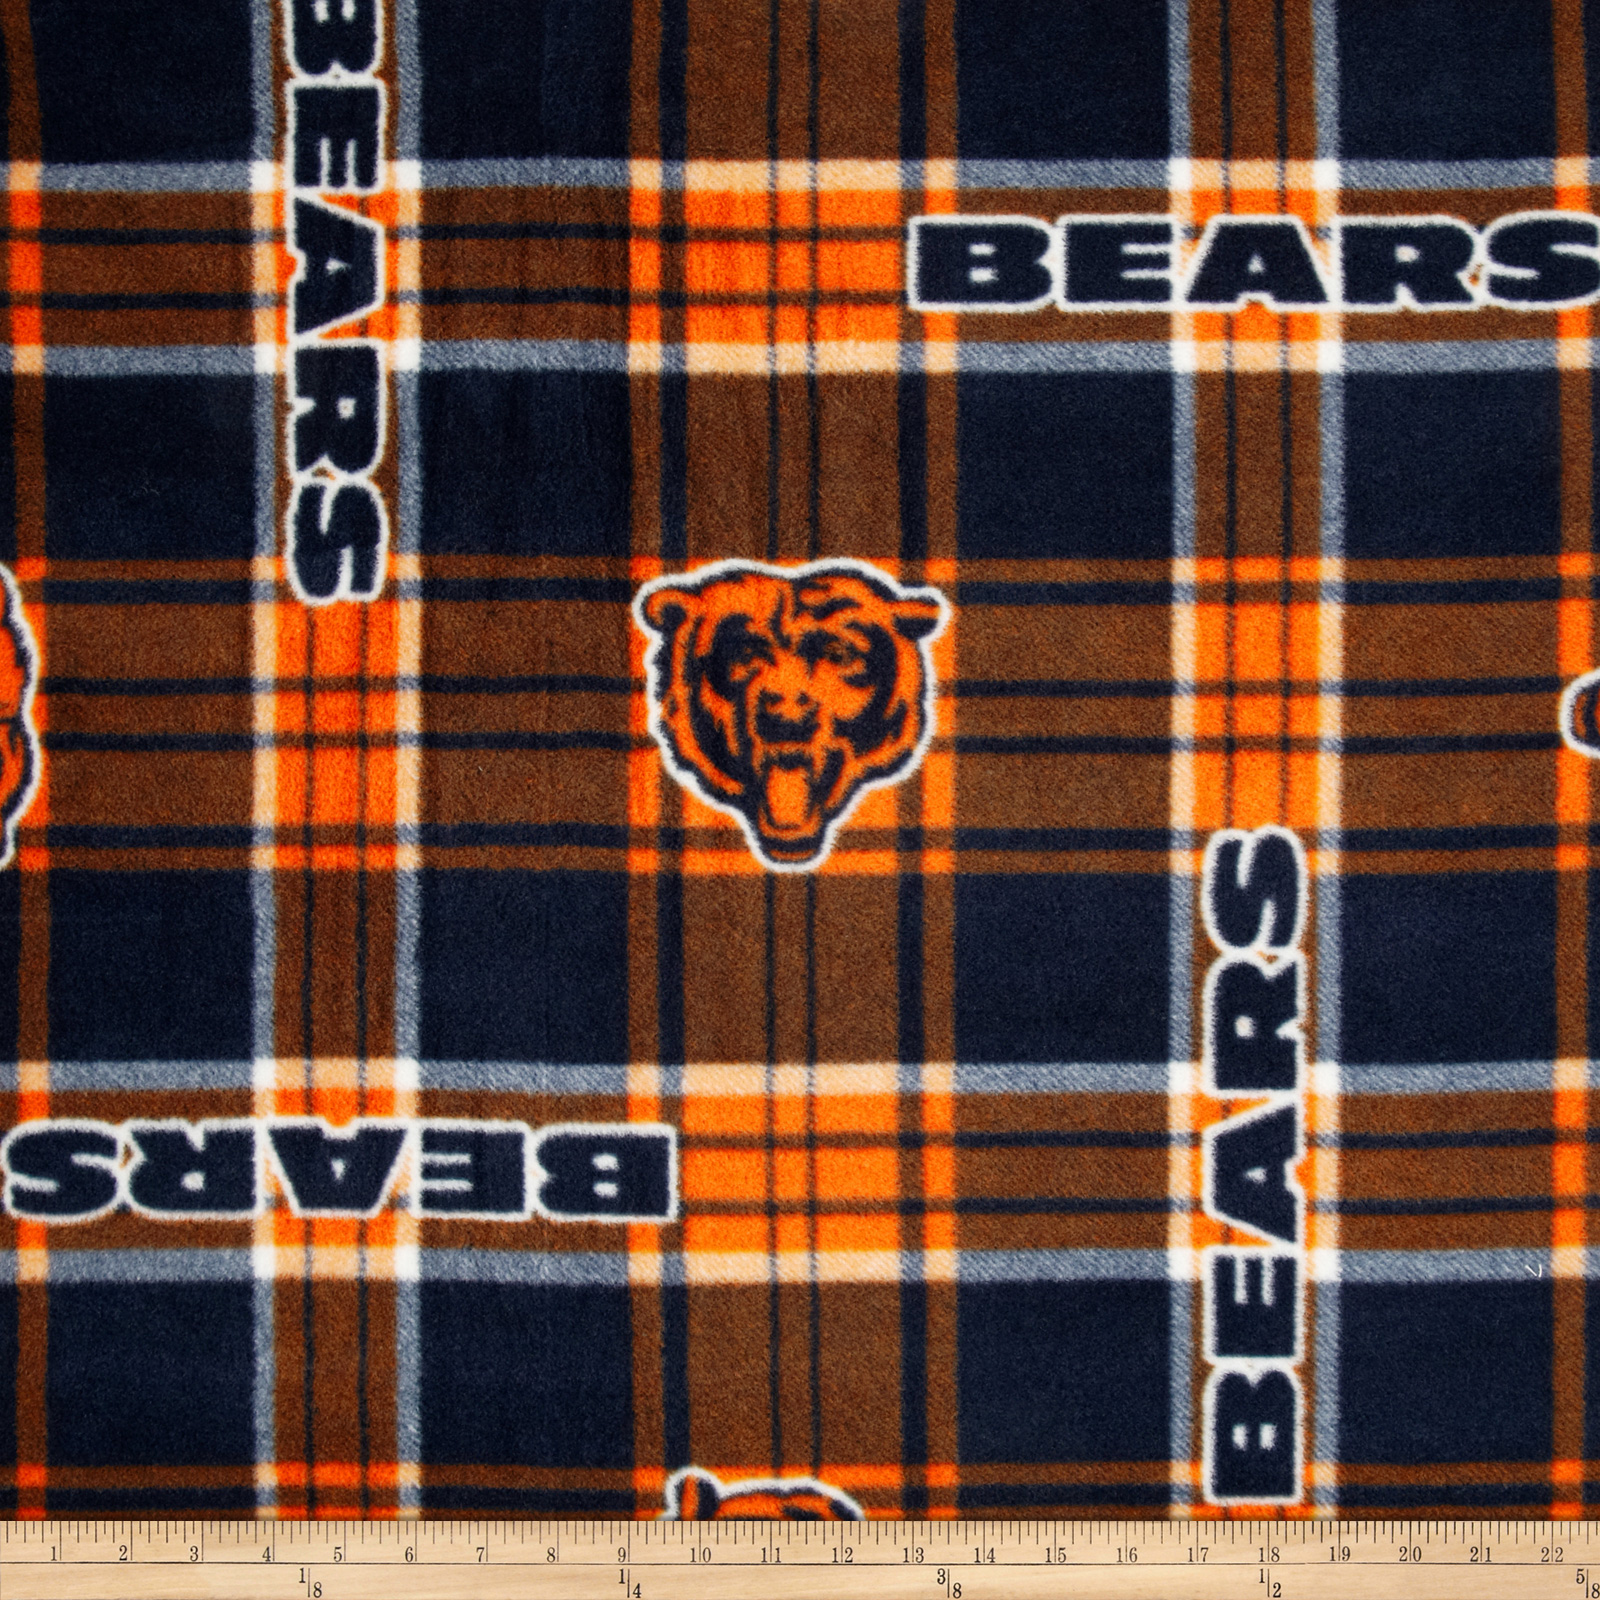 NFL Fleece Chicago Bears Plaid Blue/Orange Fabric